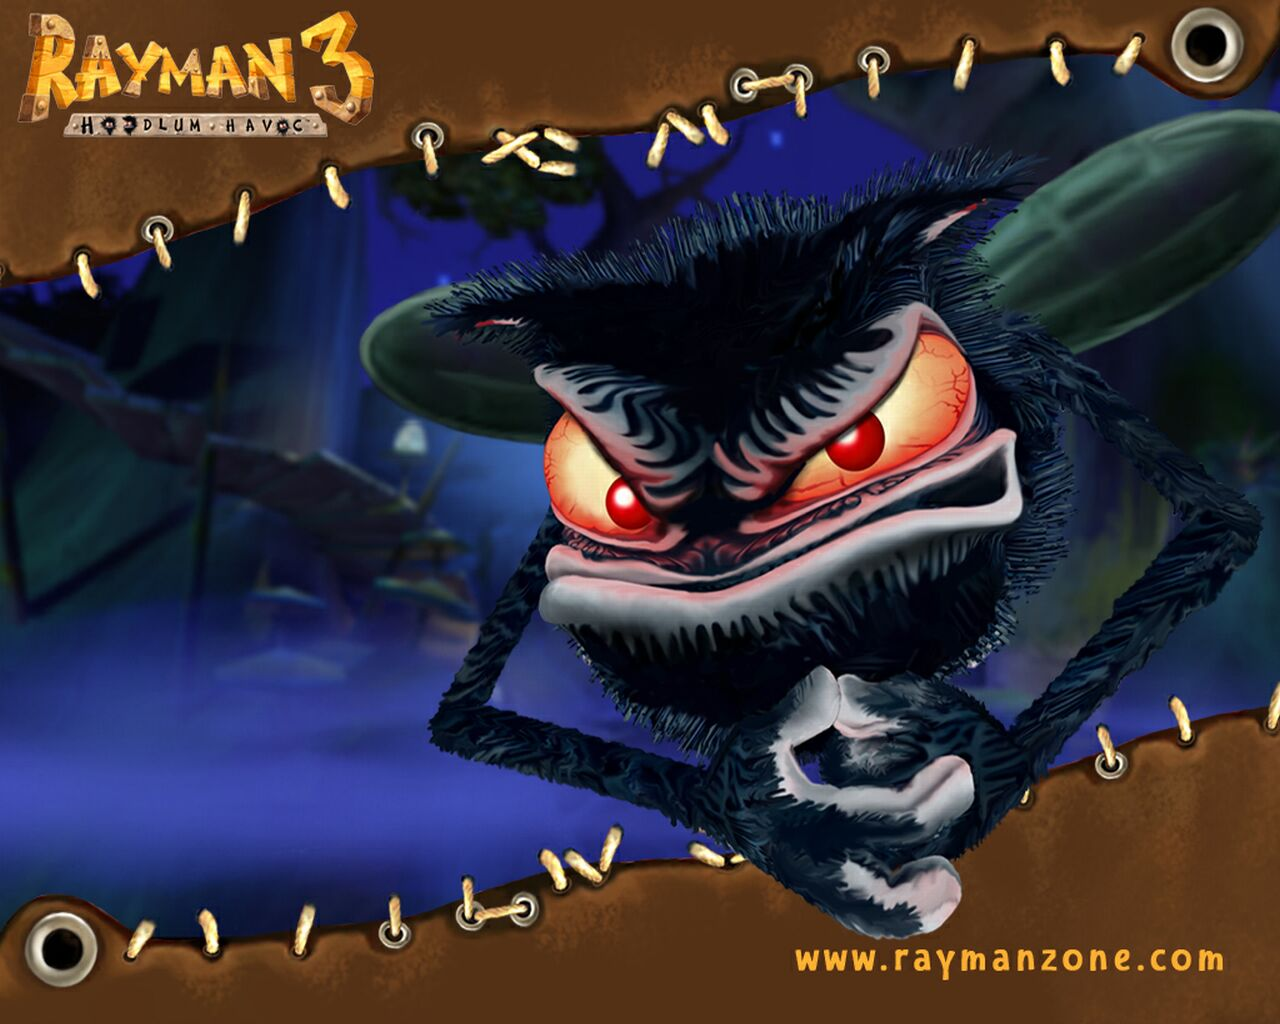 Rayman 3: Hoodlum Havoc video game wallpaper